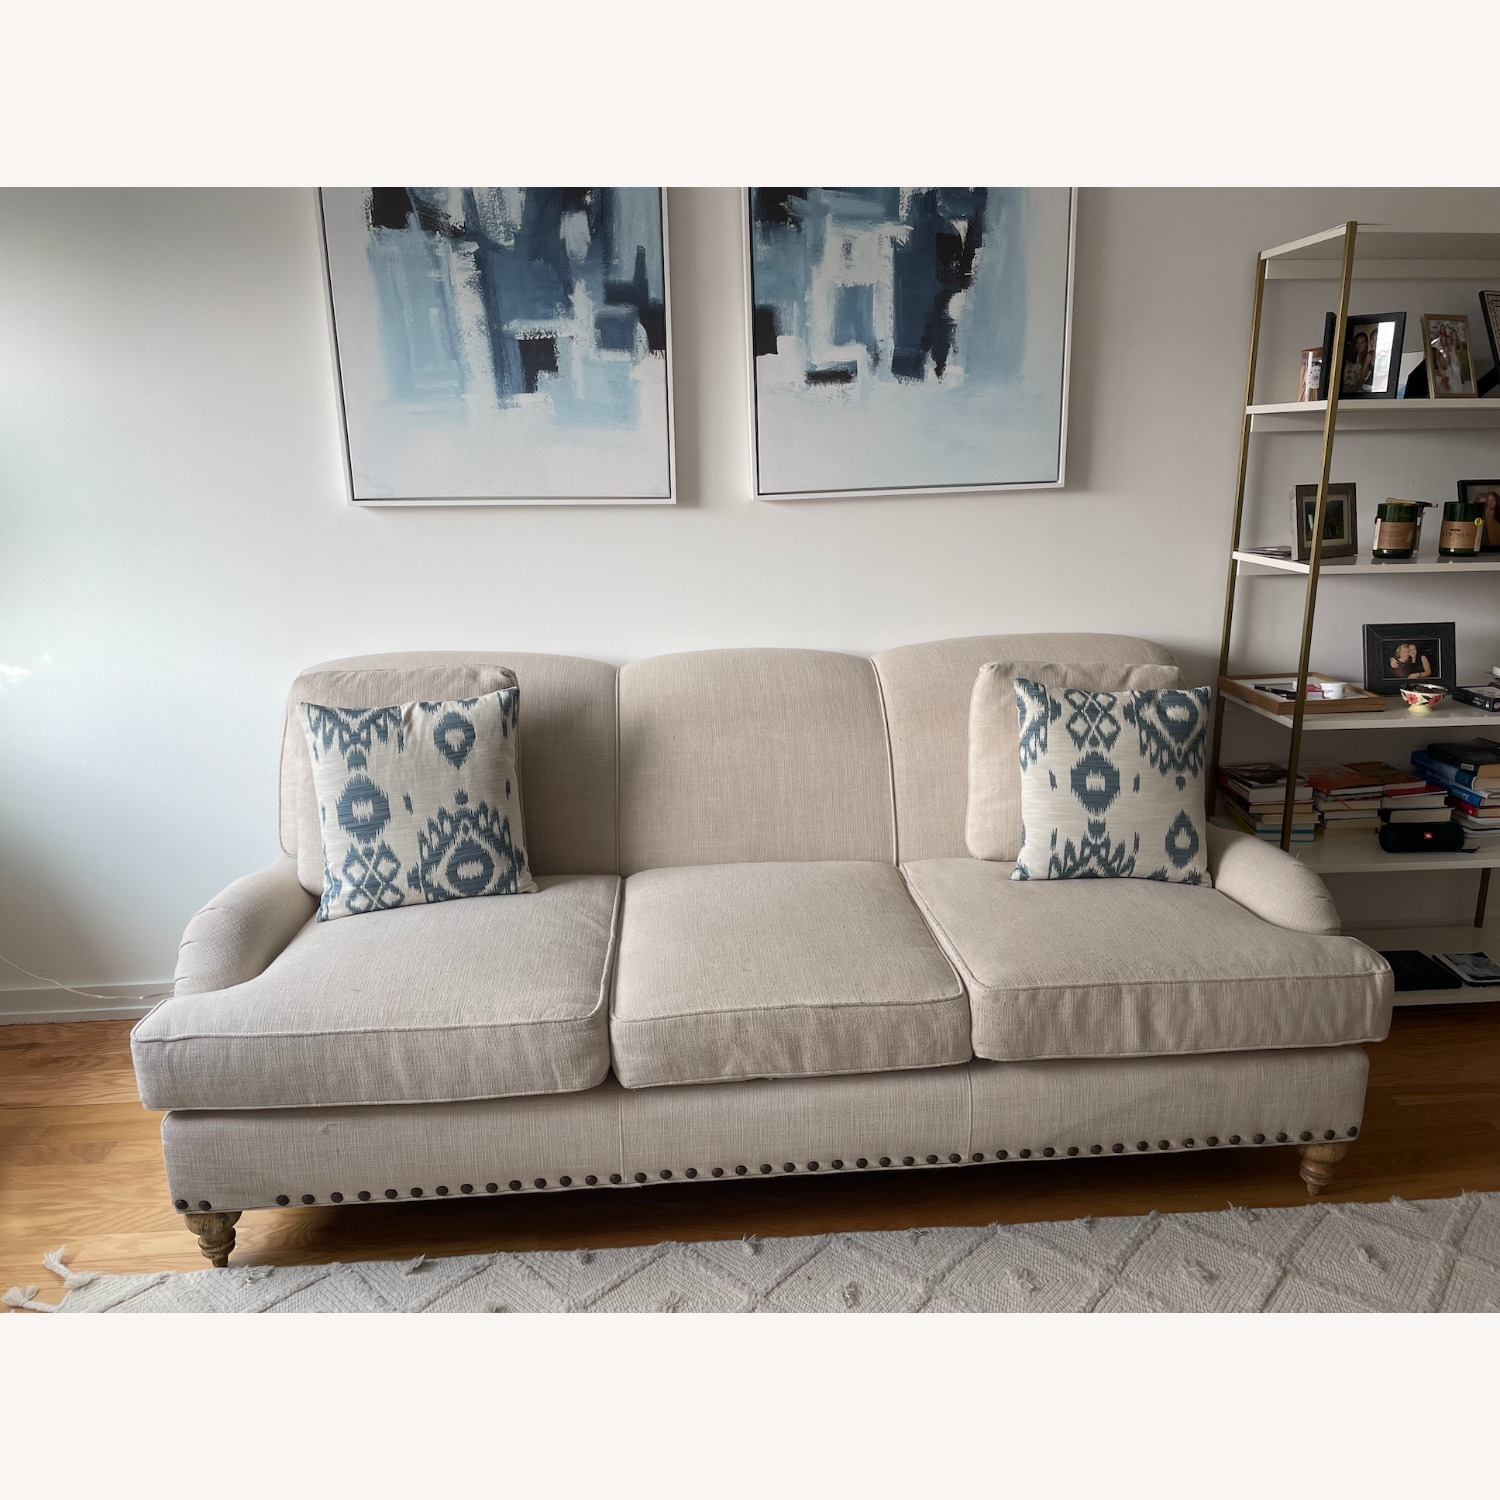 Arhaus White Couch - image-1